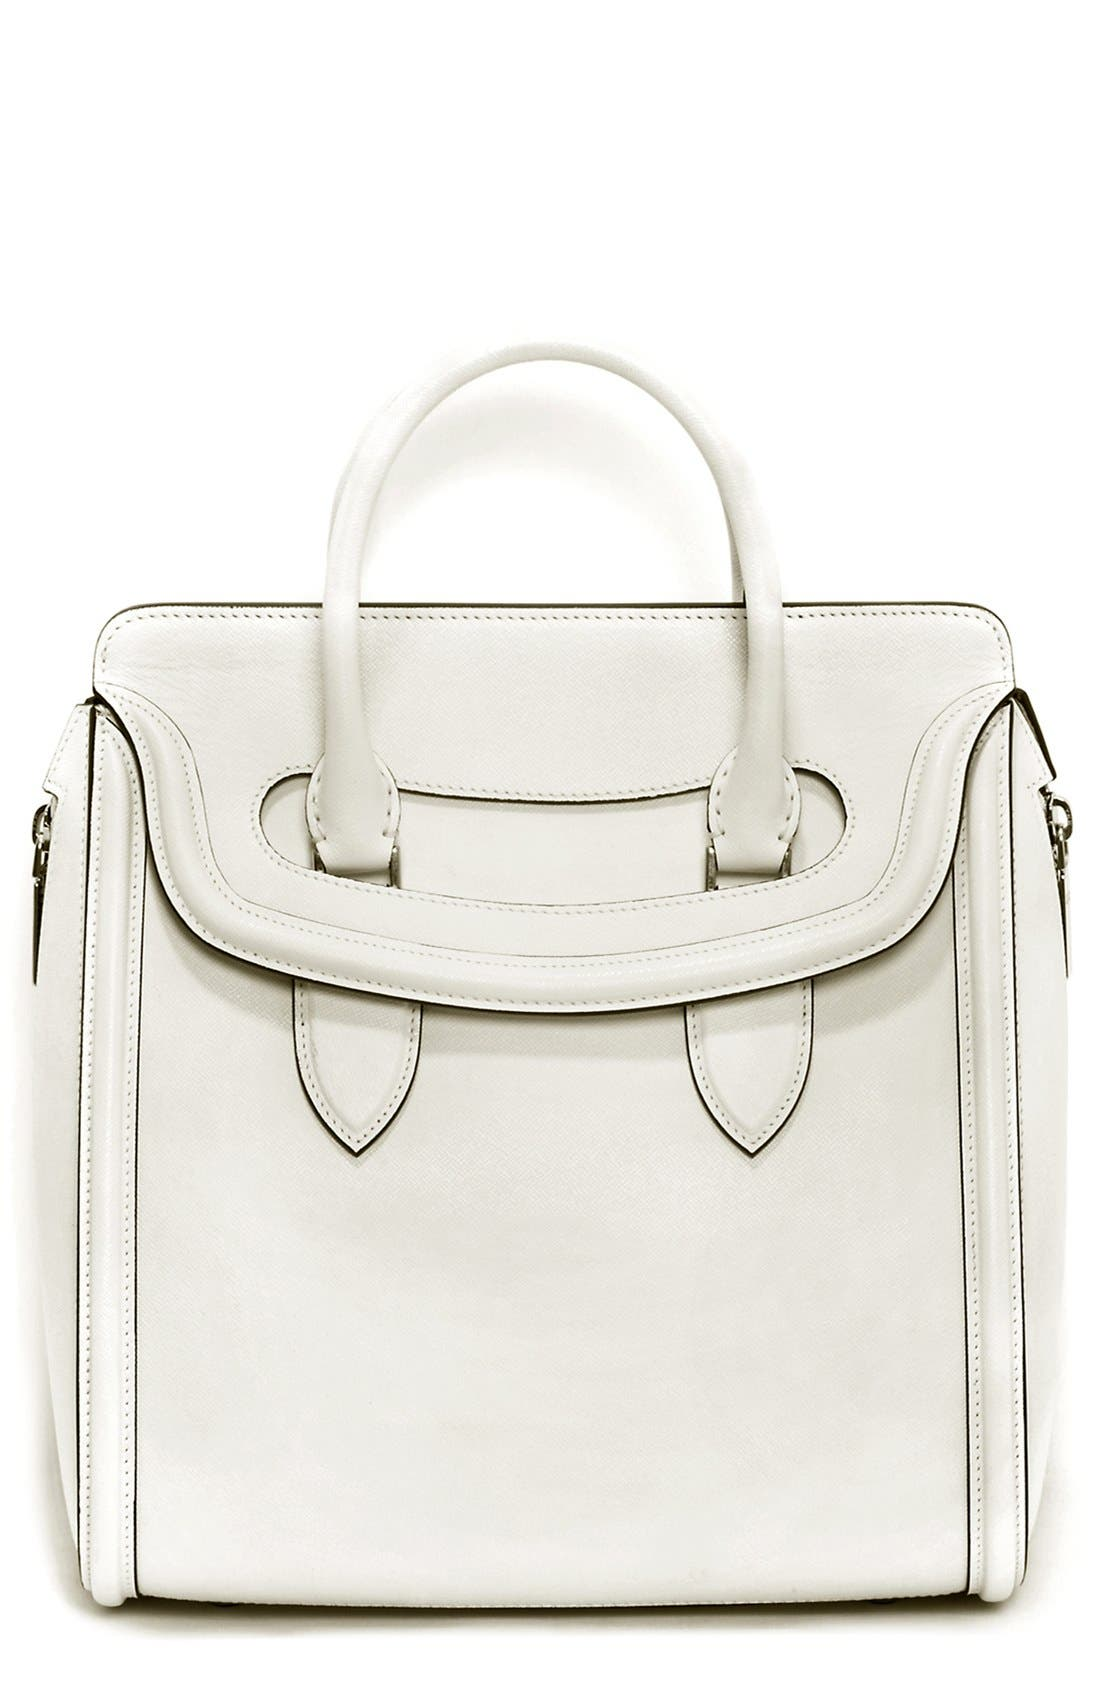 Alternate Image 1 Selected - Alexander McQueen 'Medium Heroine' Calfskin Leather Satchel